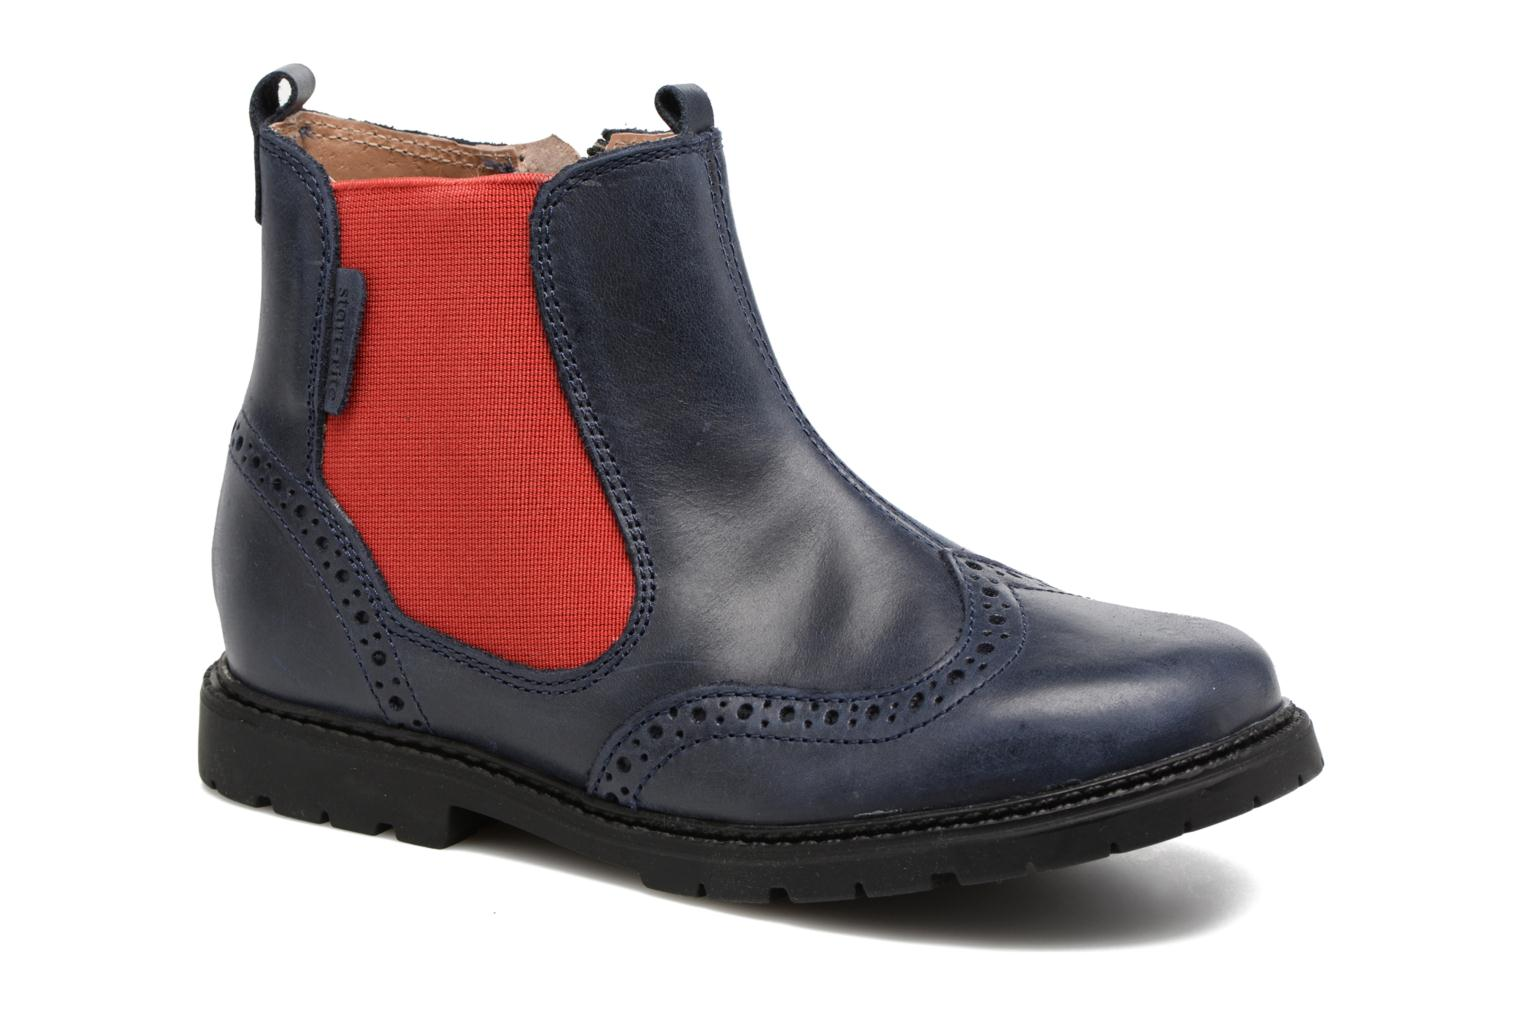 Digby Navy leather